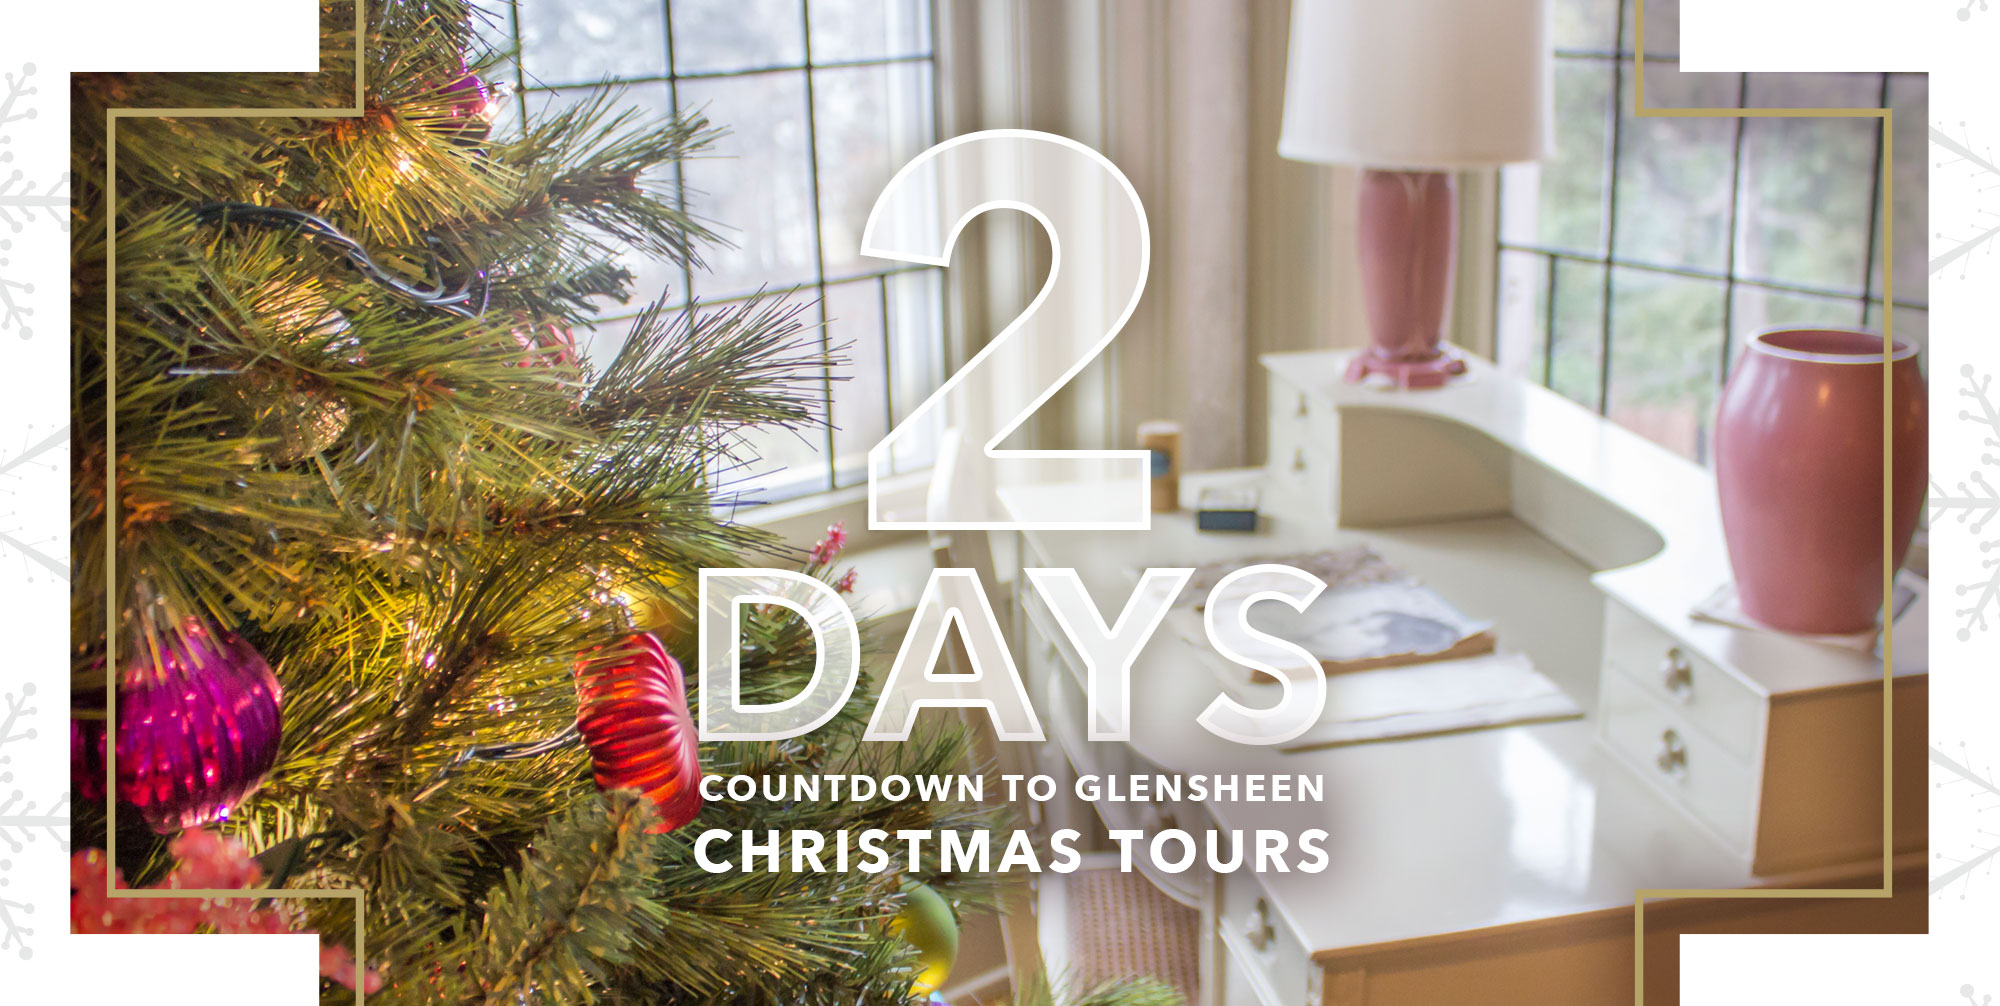 two days until Christmas tours at glensheen